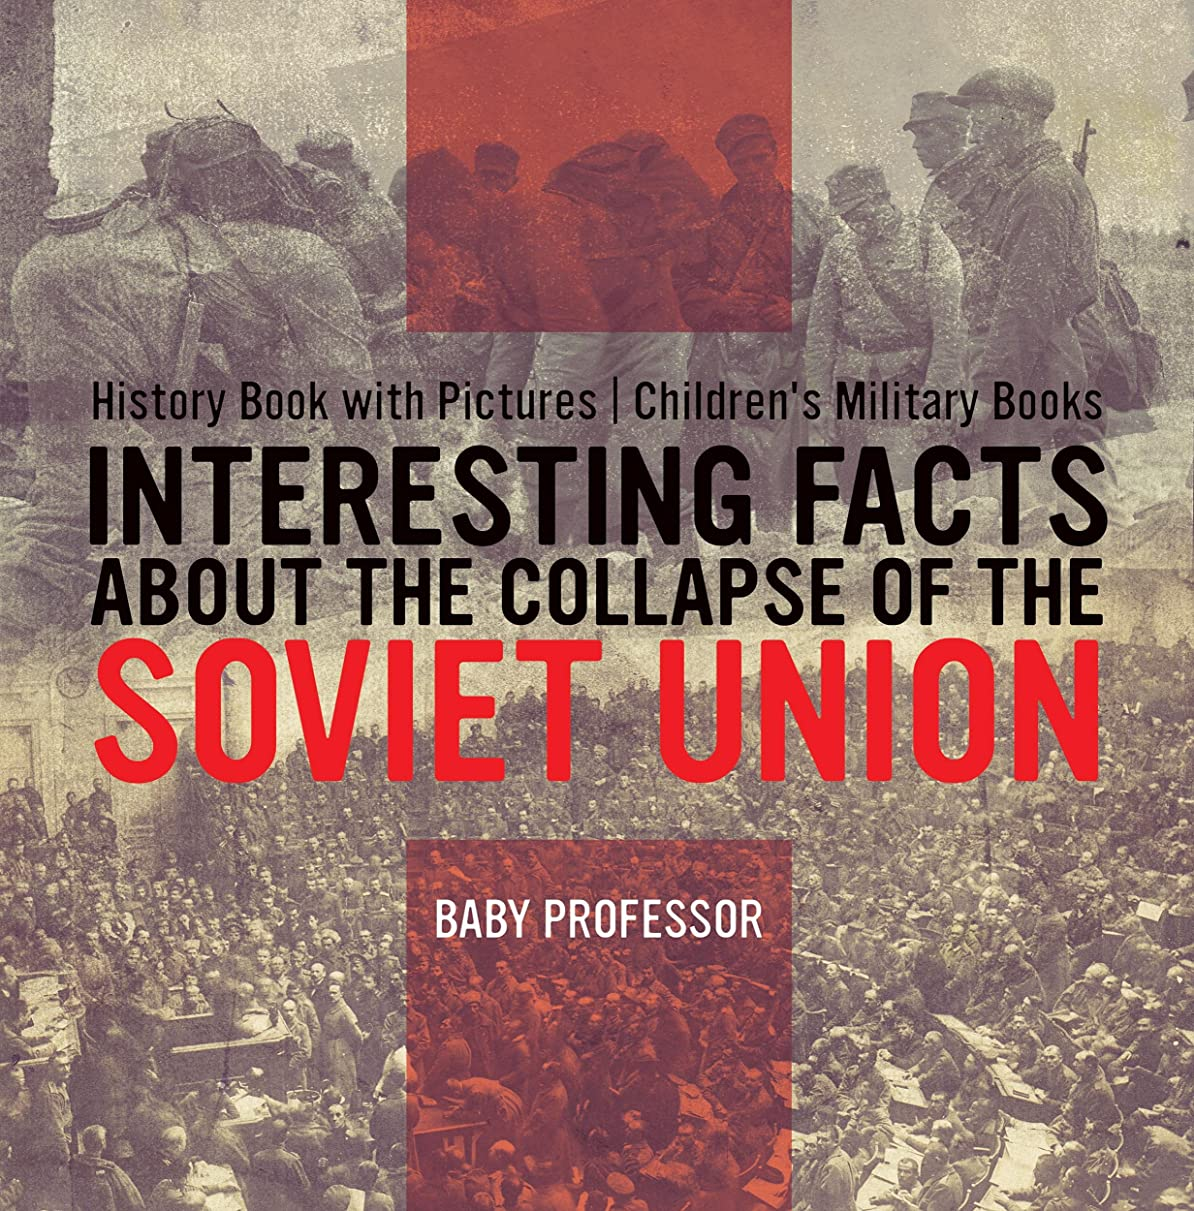 Interesting Facts about the Collapse of the Soviet Union - History Book with Pictures | Children's Military Books (English Edition)